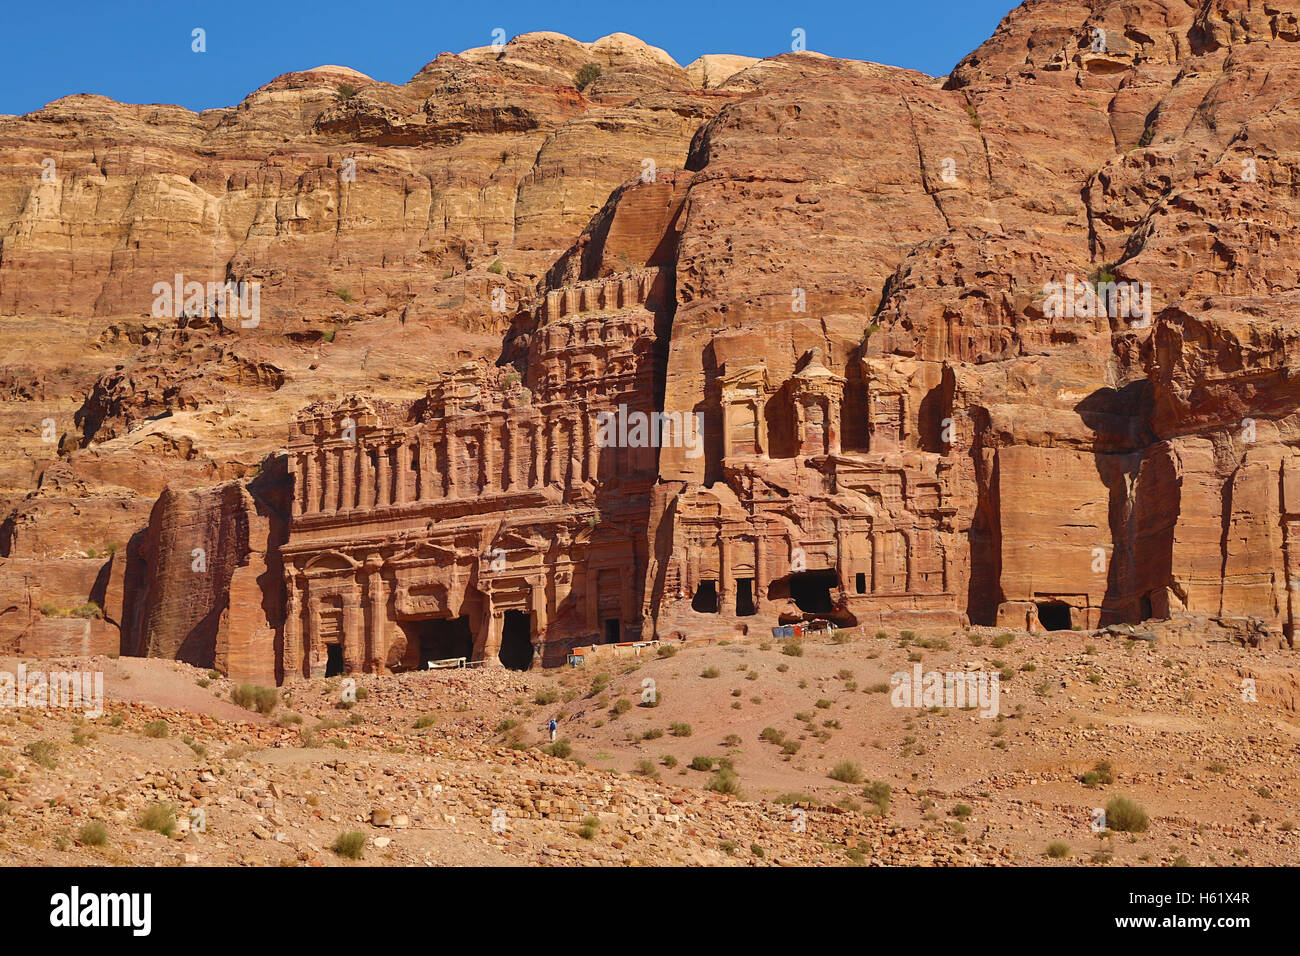 The Corinthian Tomb and the Palace Tomb of the Royal Tombs in the rock city of Petra, Jordan Stock Photo